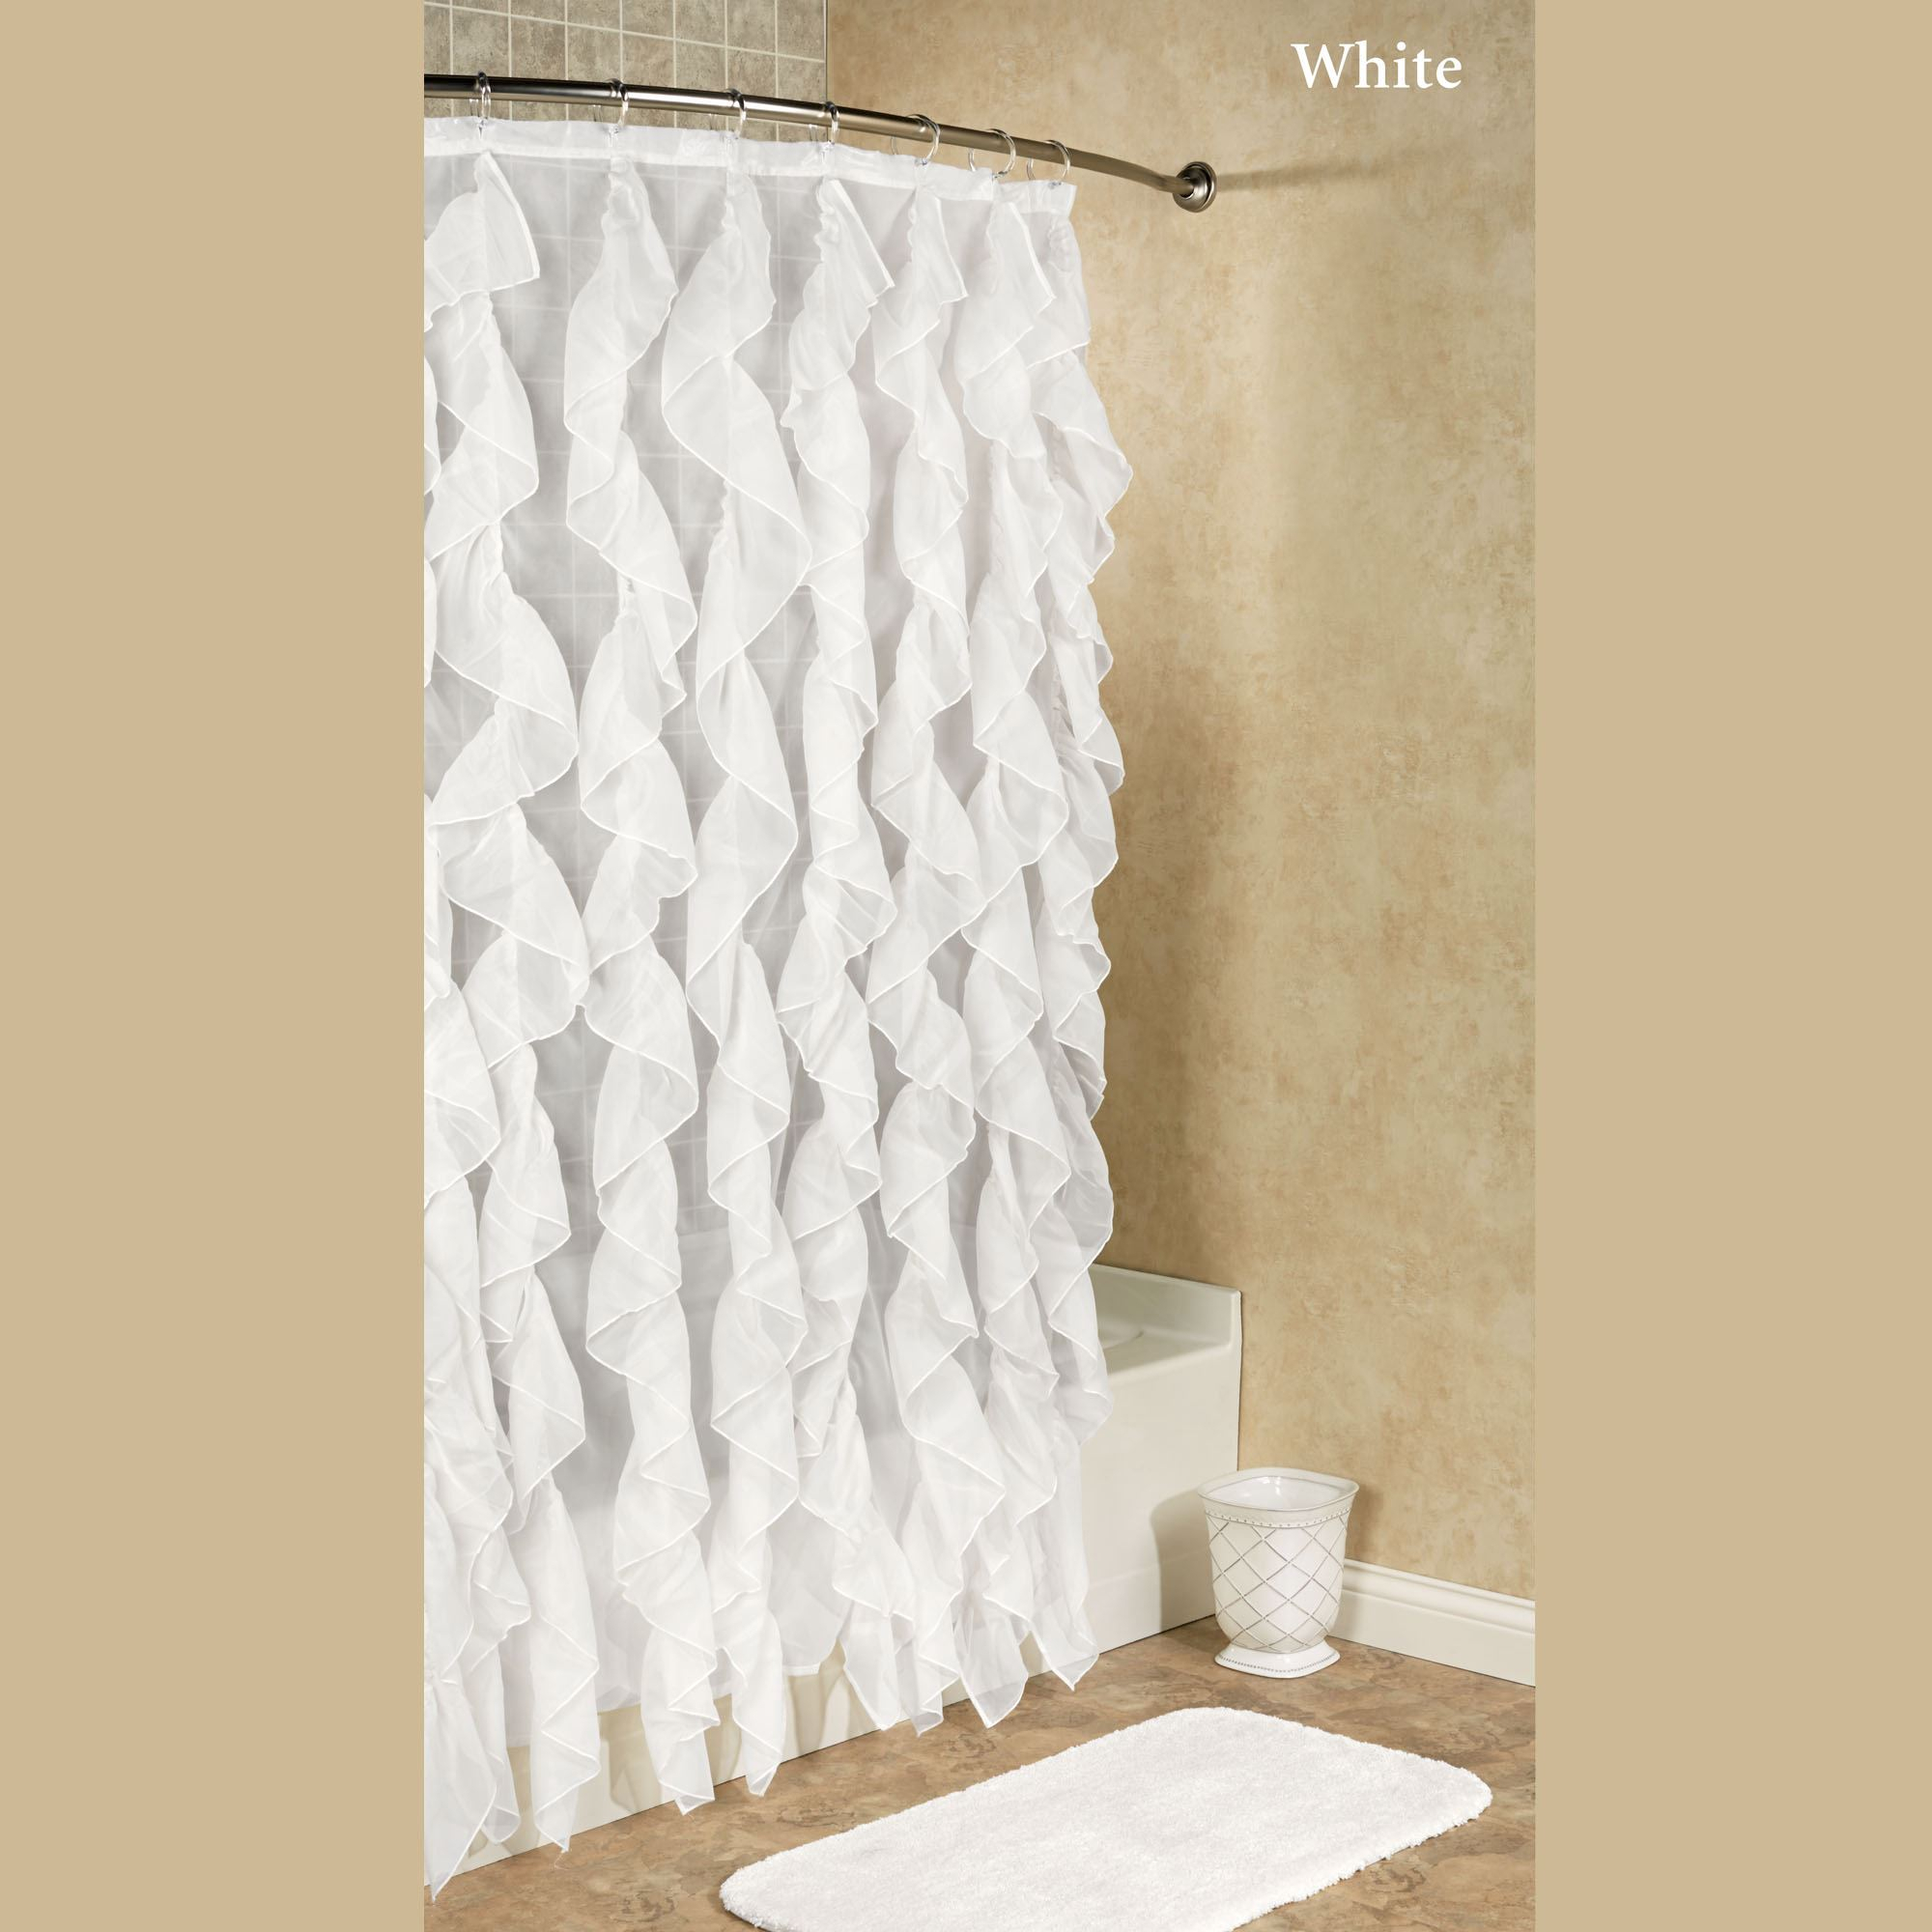 Cascade Ruffled Voile Shower Curtain In Sheer Voile Waterfall Ruffled Tier Single Curtain Panels (View 13 of 20)